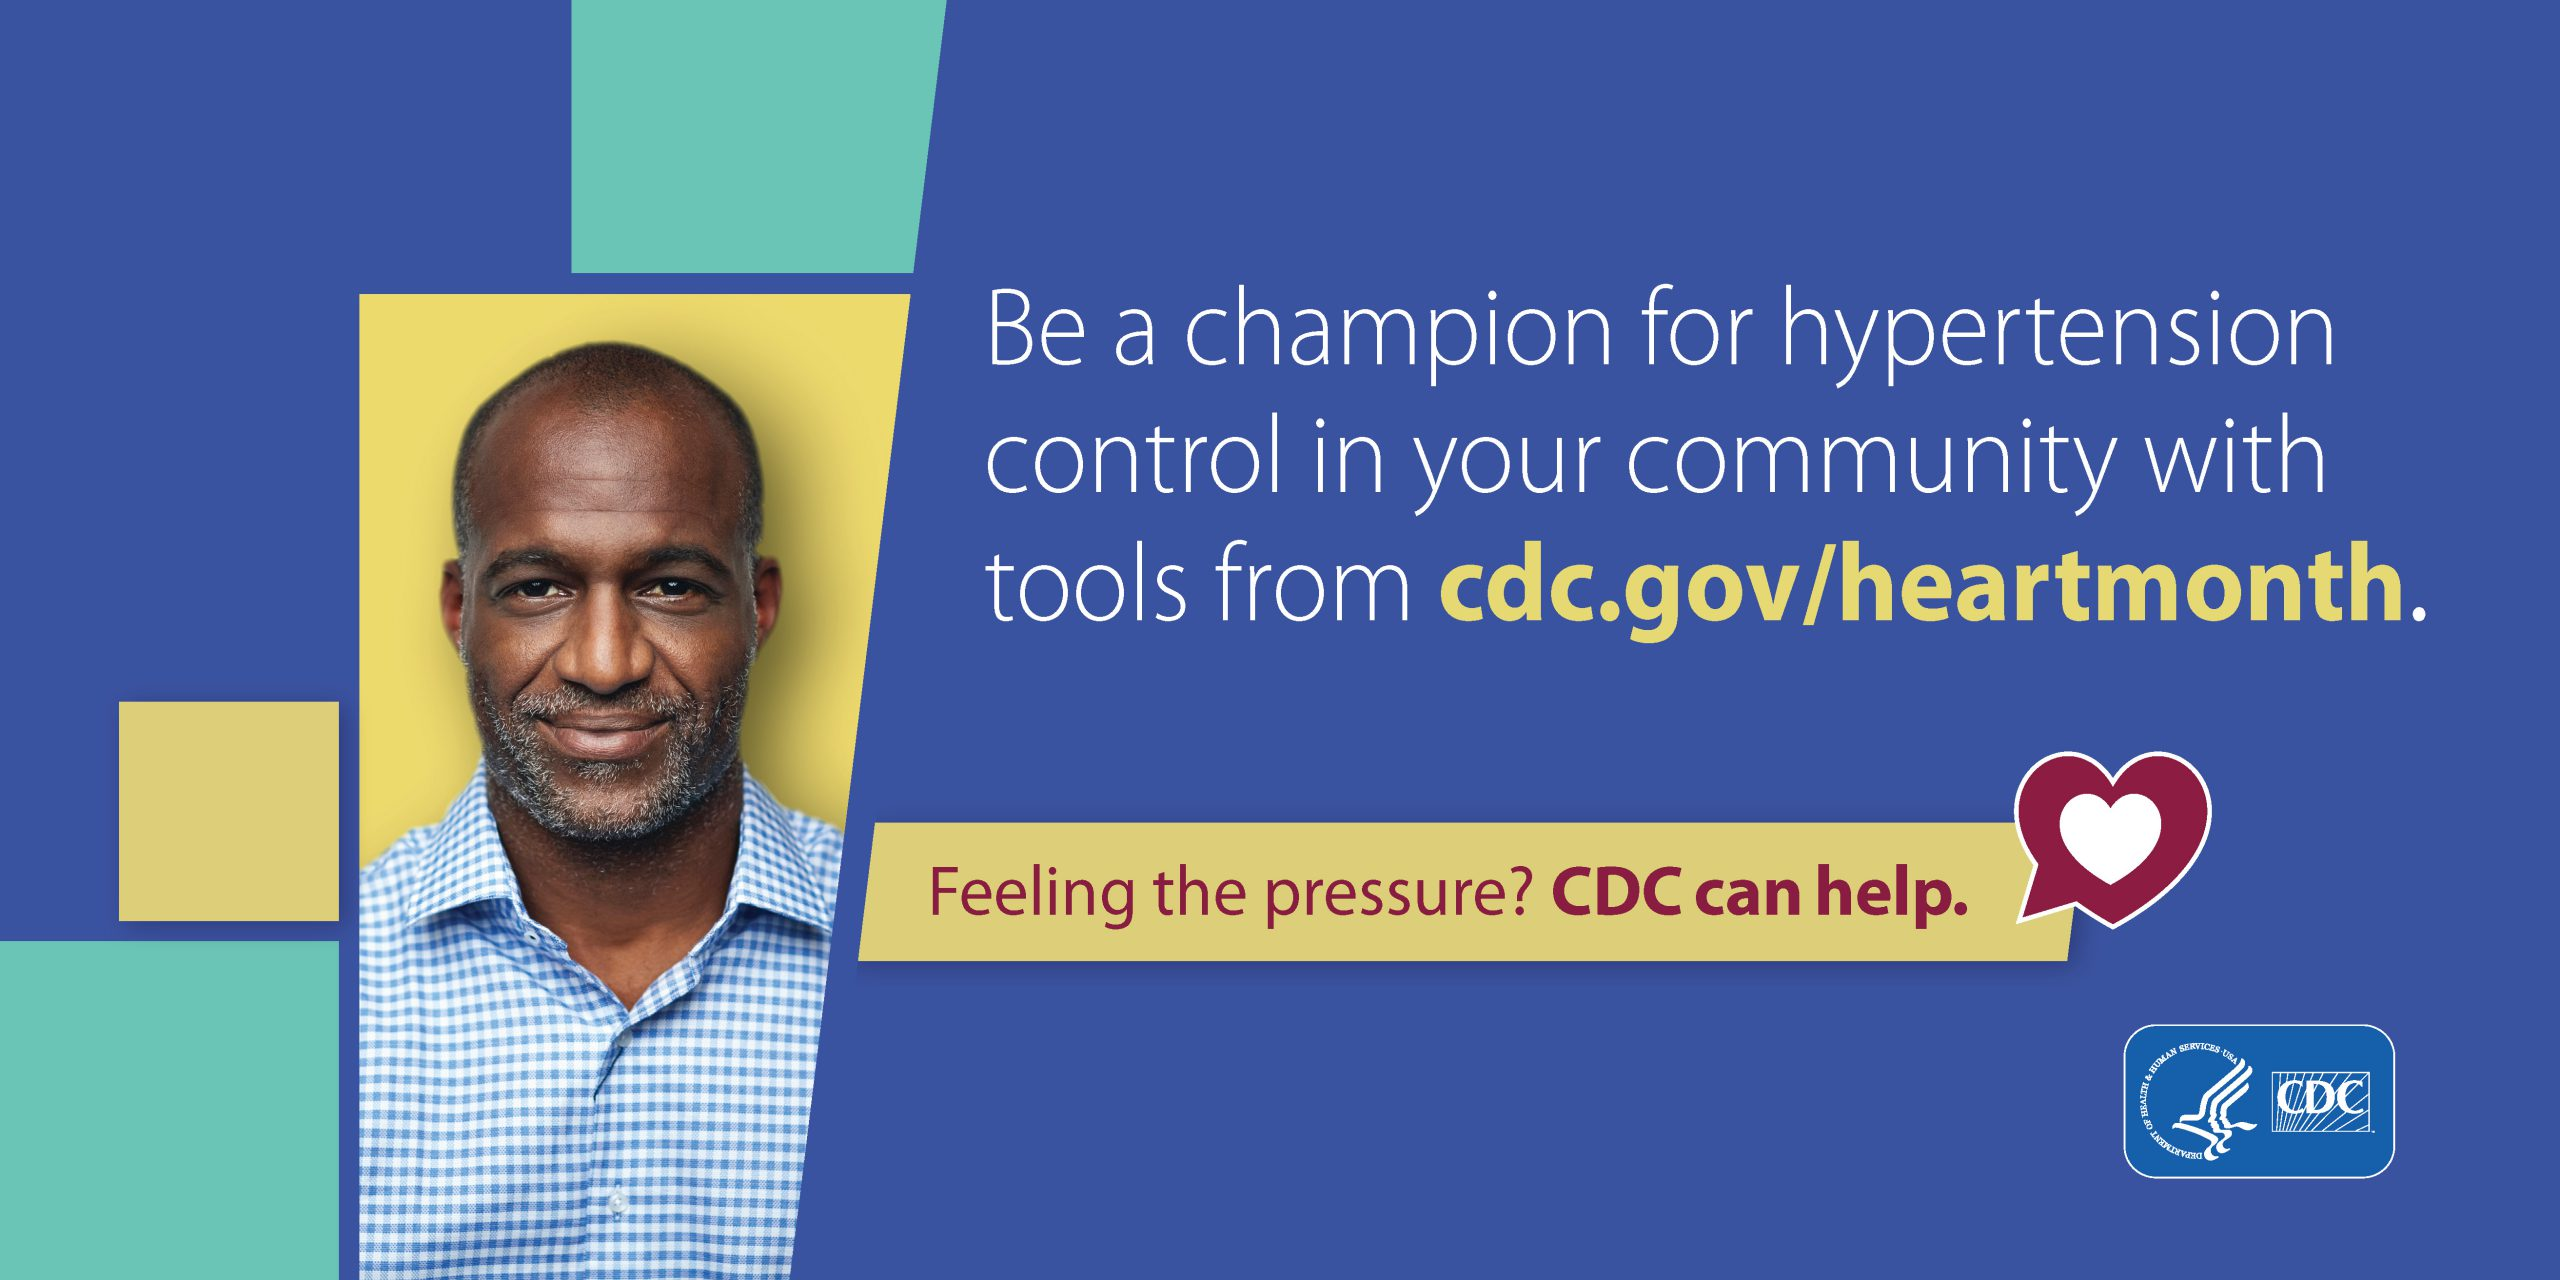 Be a champion for hypertension control in your community with tools from cdc.gov/heartmonth. Feeling the pressure? CDC can help.